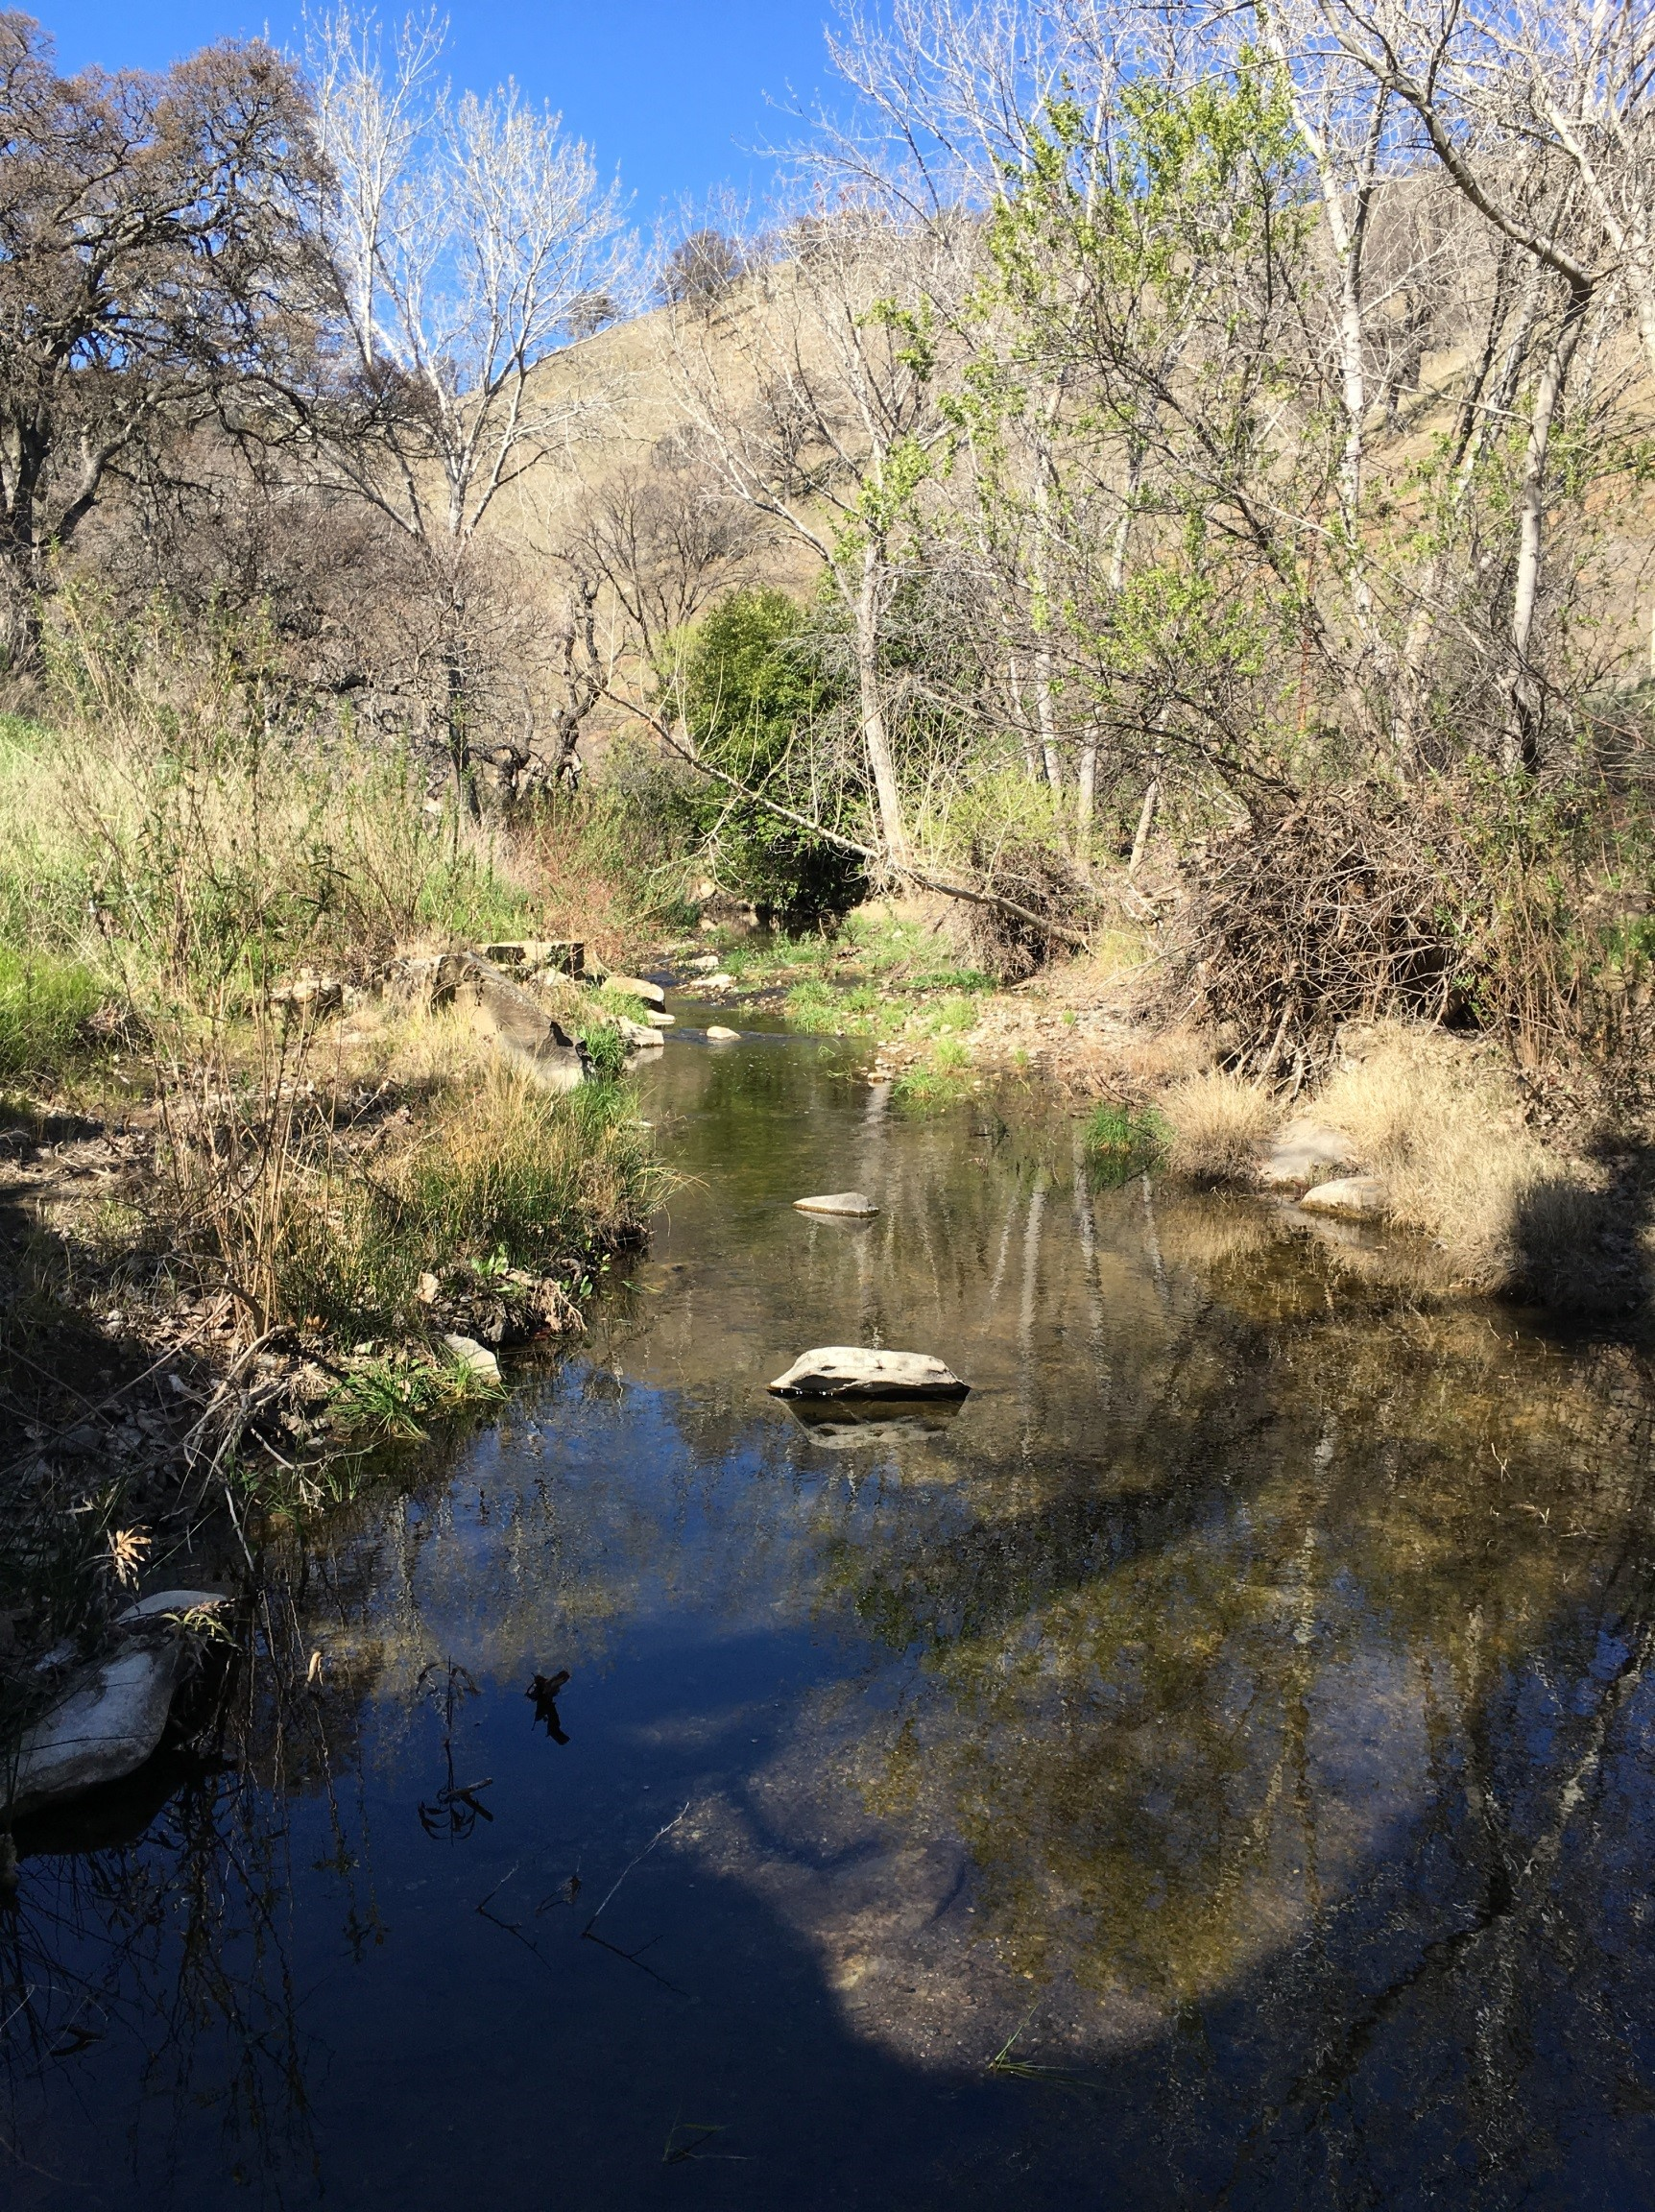 Marsh Creek site monitored by The Watershed Project